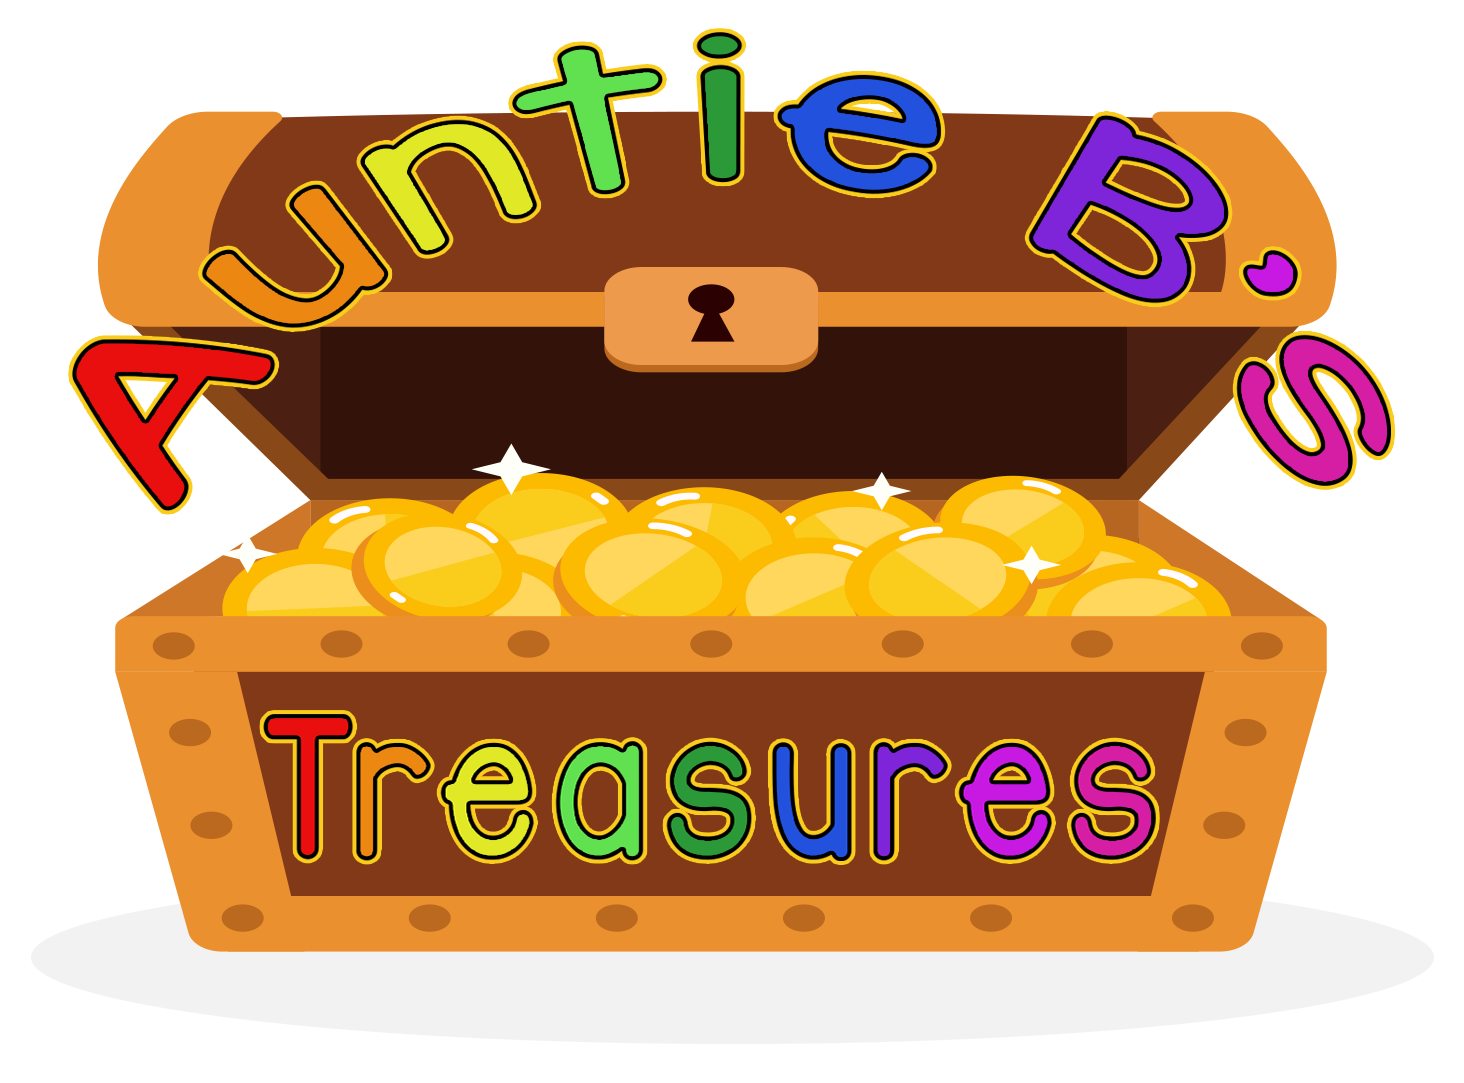 Auntie B's Treasures